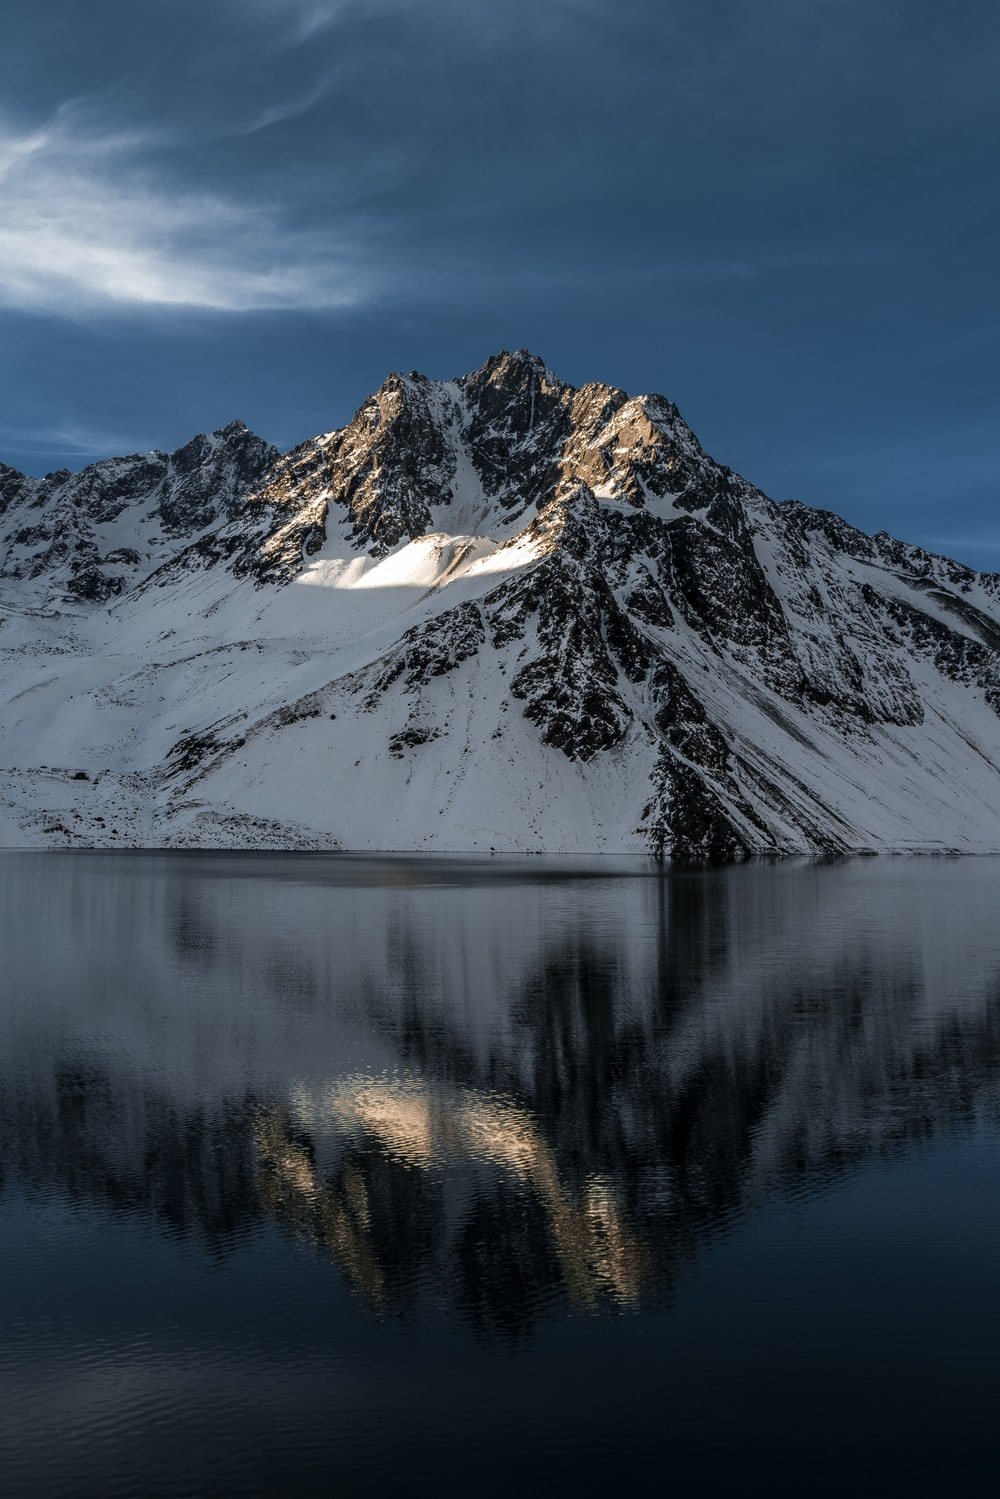 body of water near mountain coated by snow